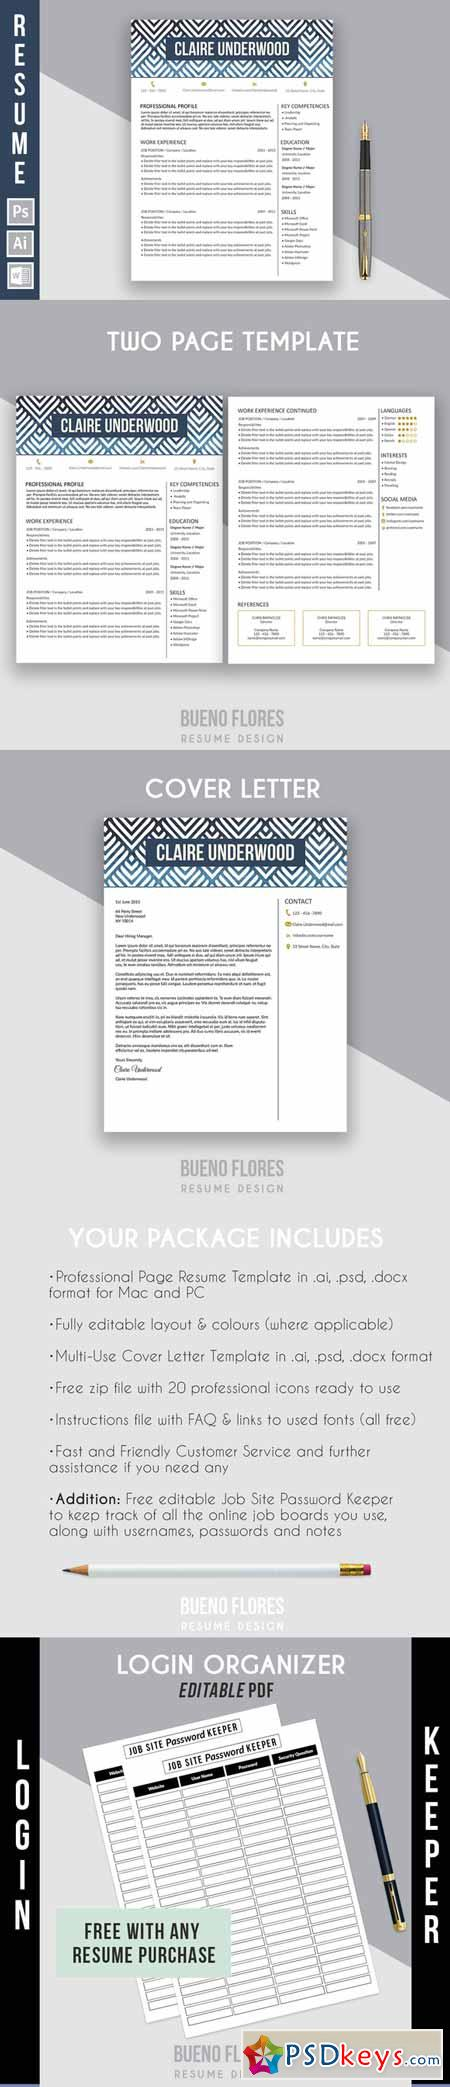 resume template claire underwood b 582476  u00bb free download photoshop vector stock image via